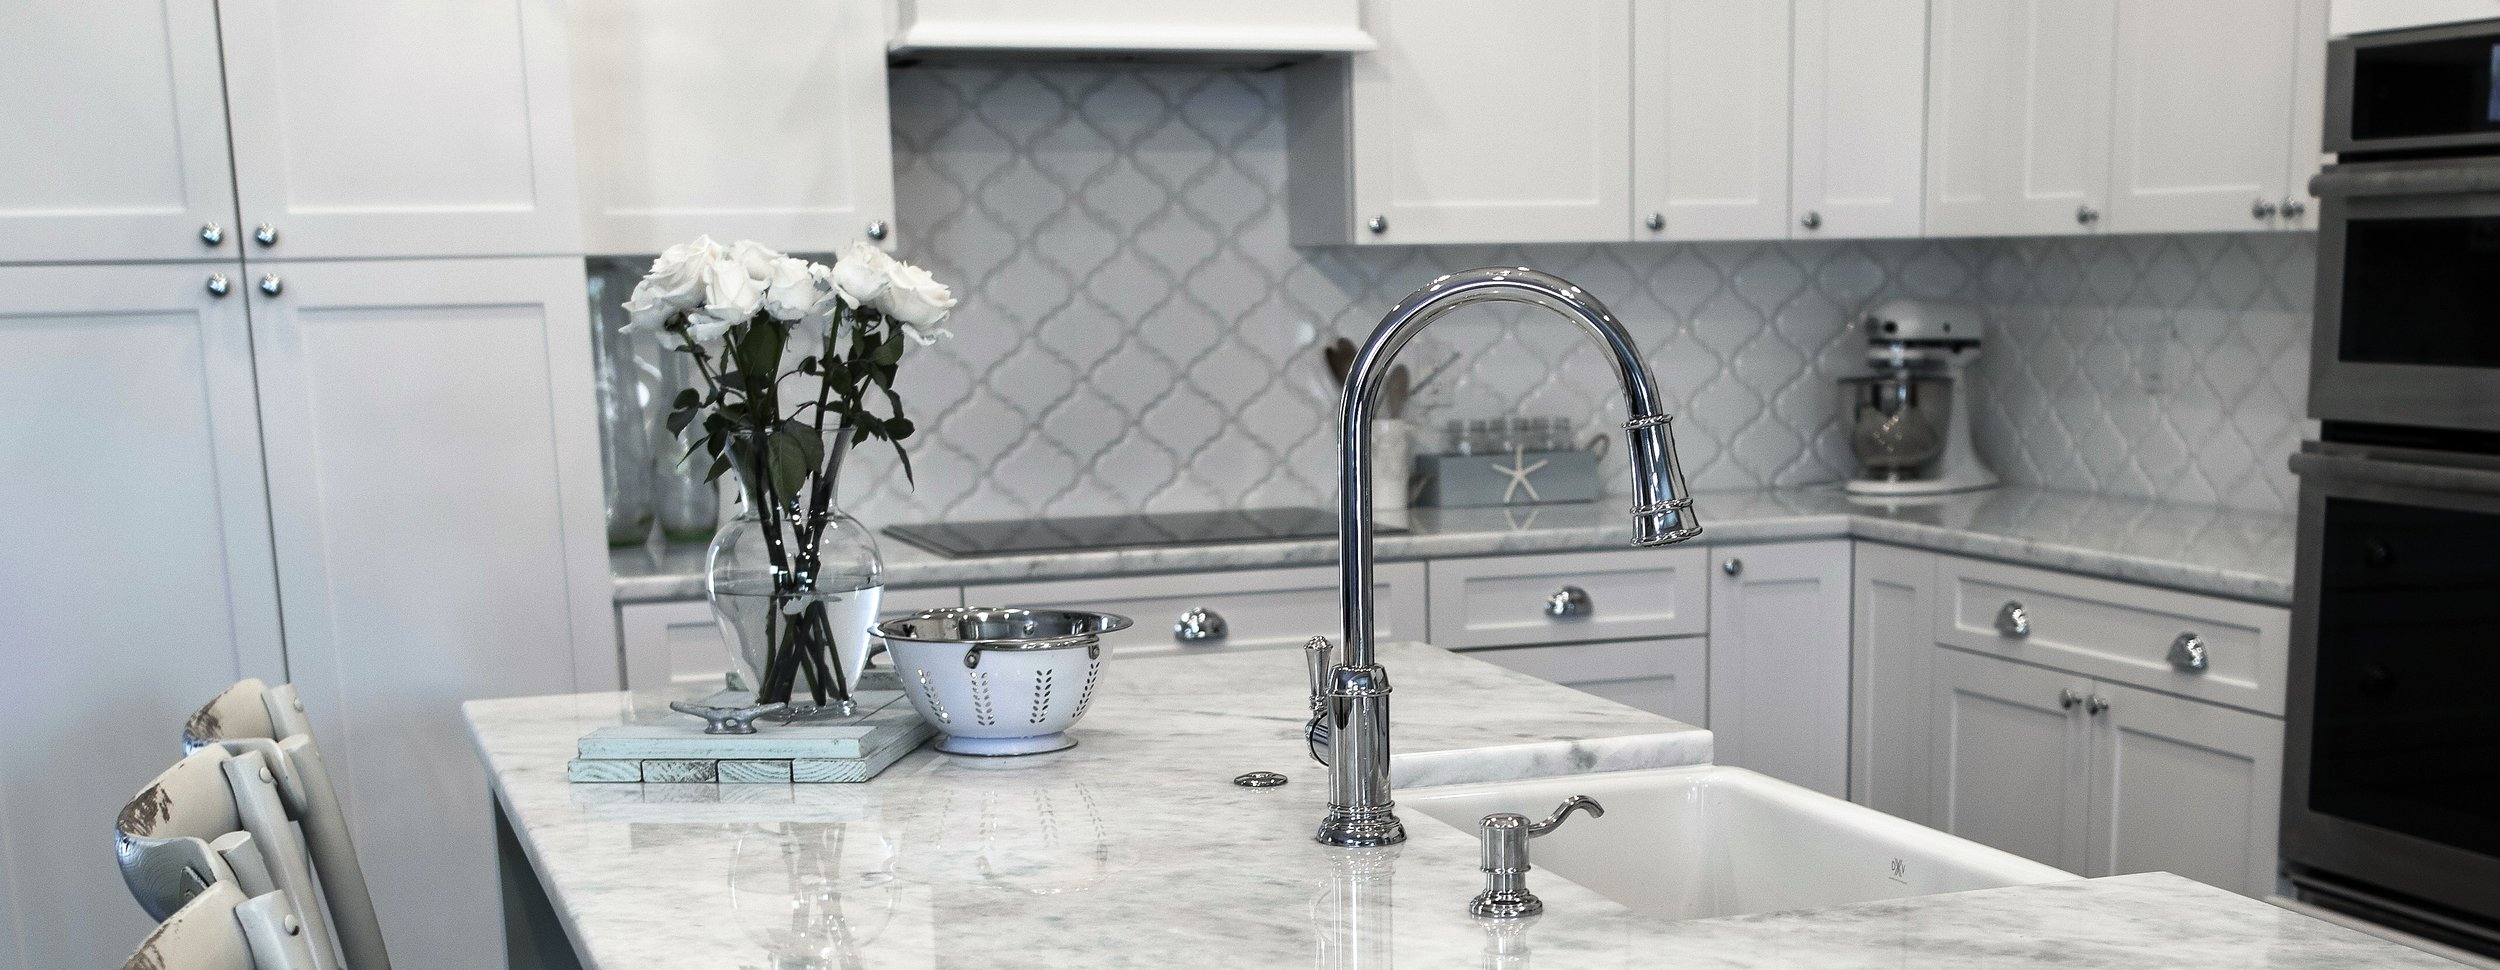 kitchen cabinets in south florida — Blog — Artful Kitchens